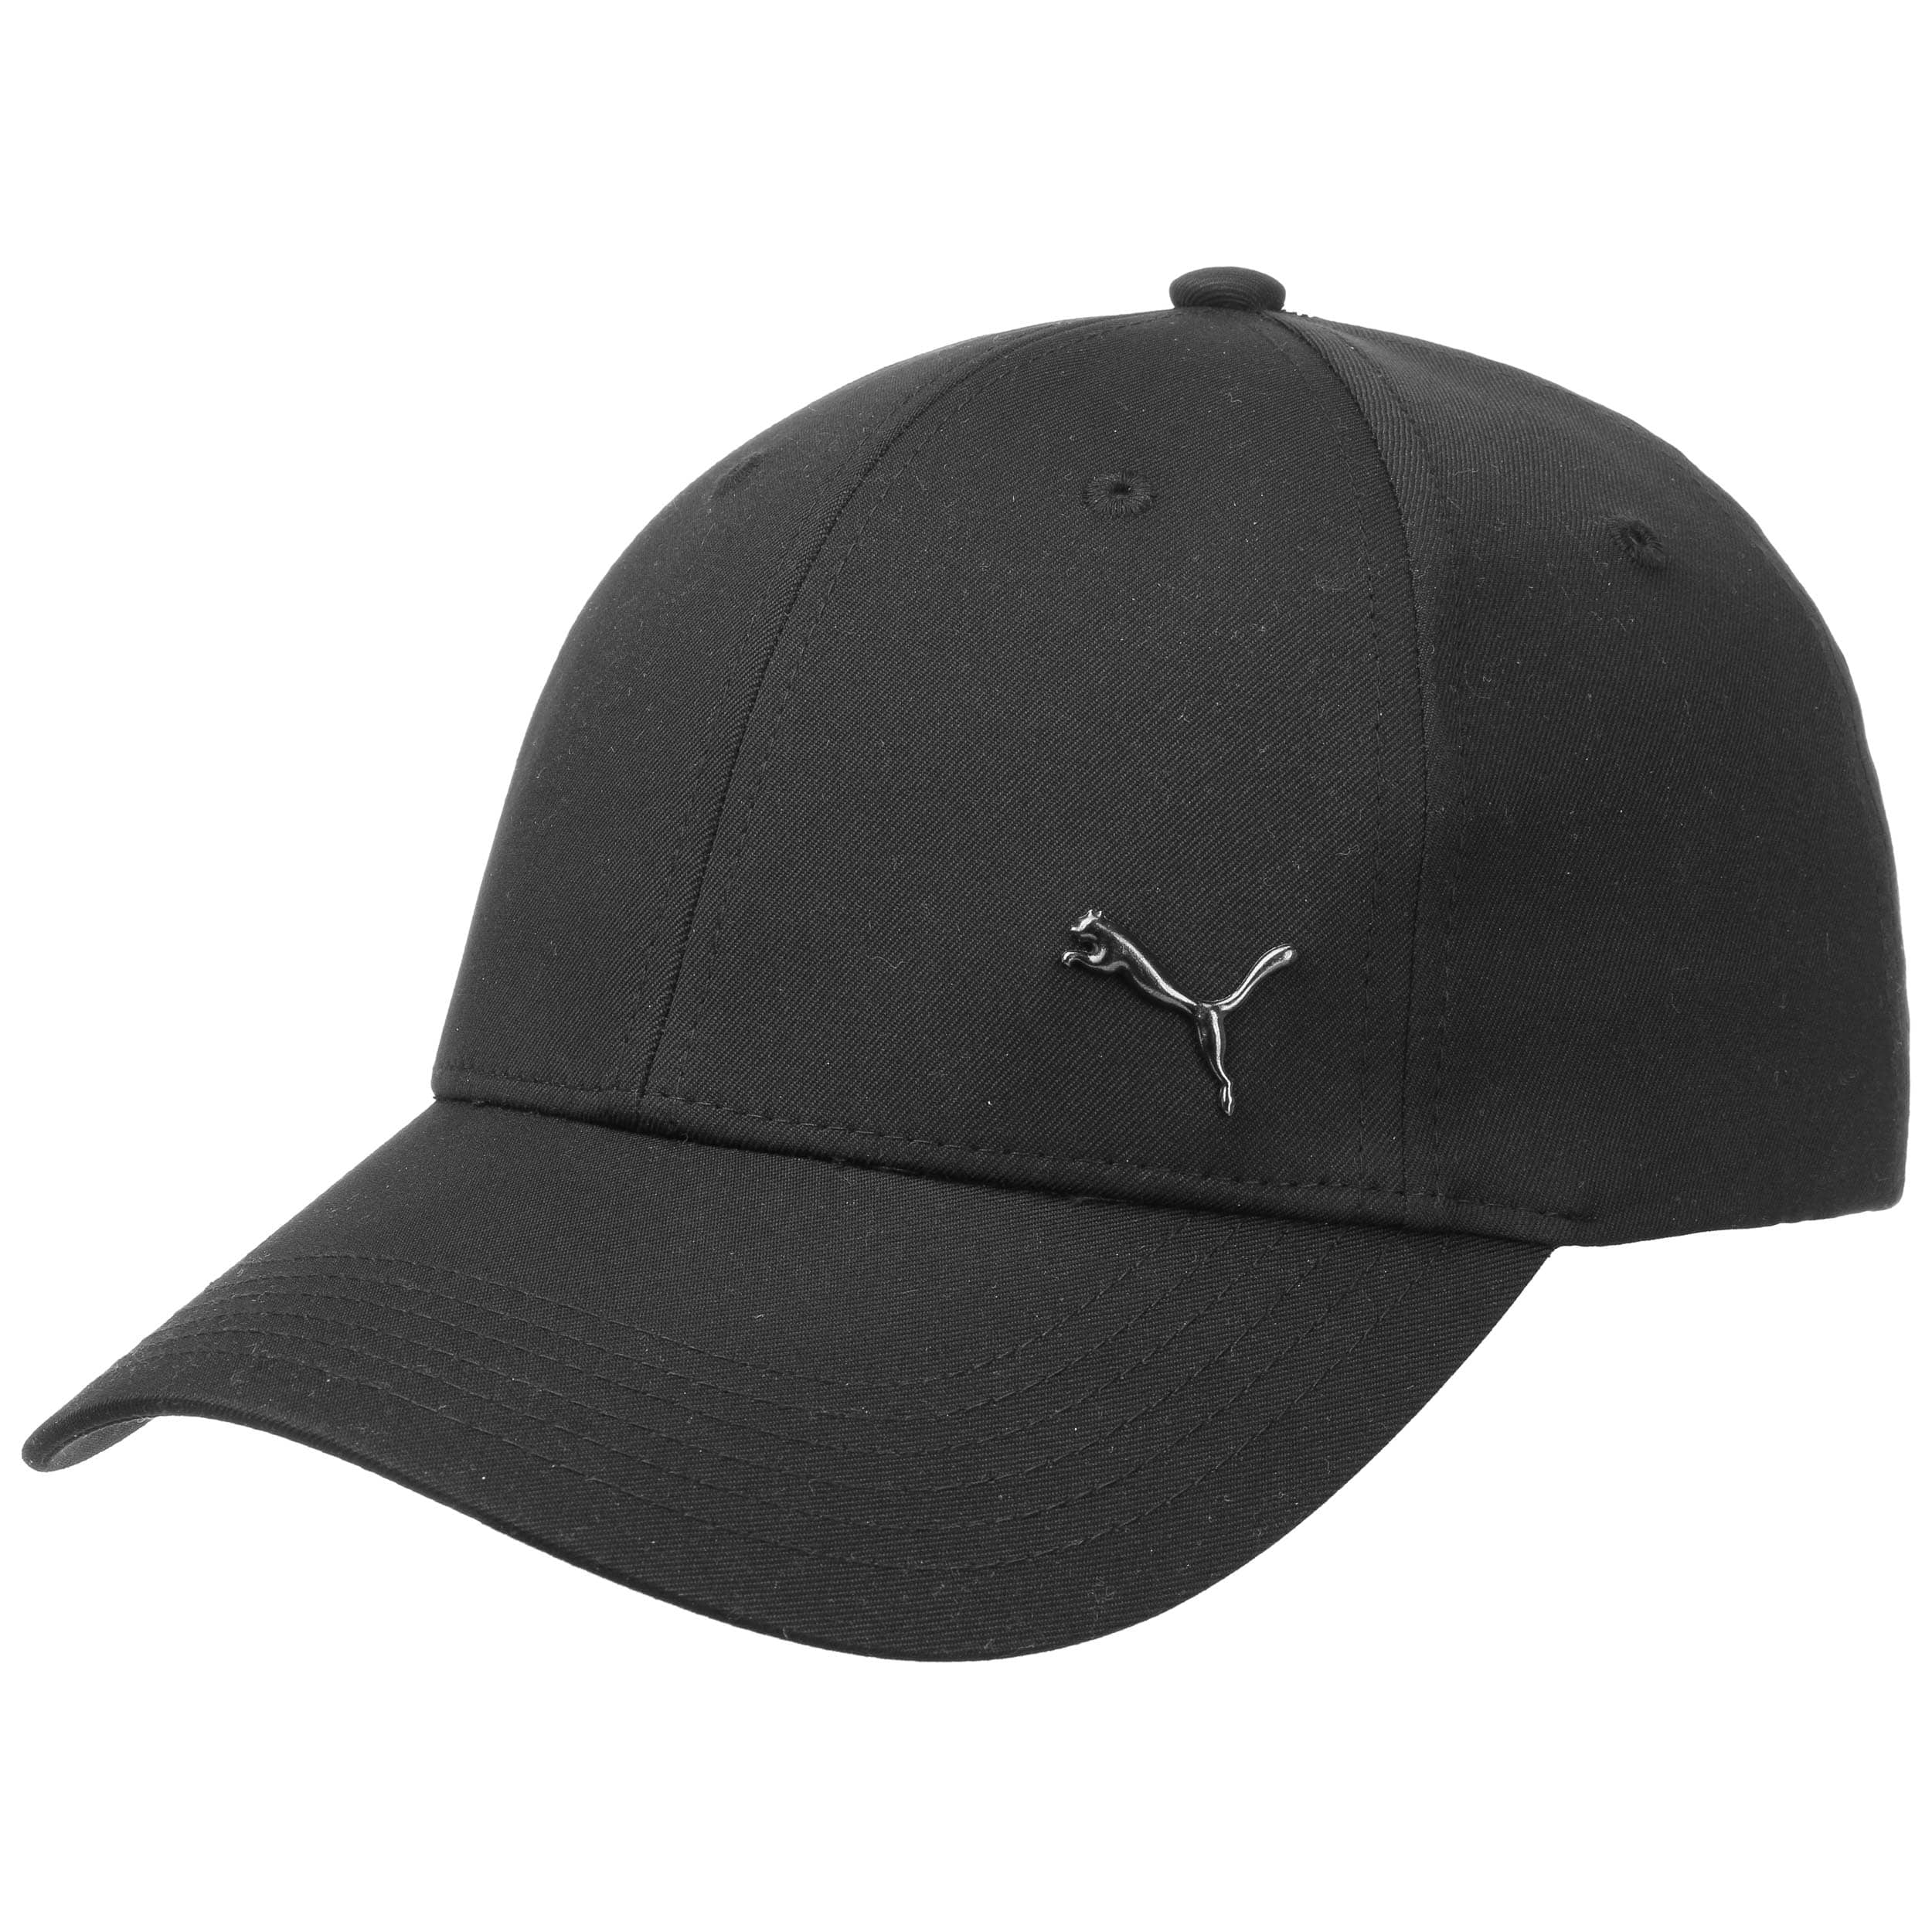 4d14b532505 ... Metal Cat Cap by PUMA - black 5 ...